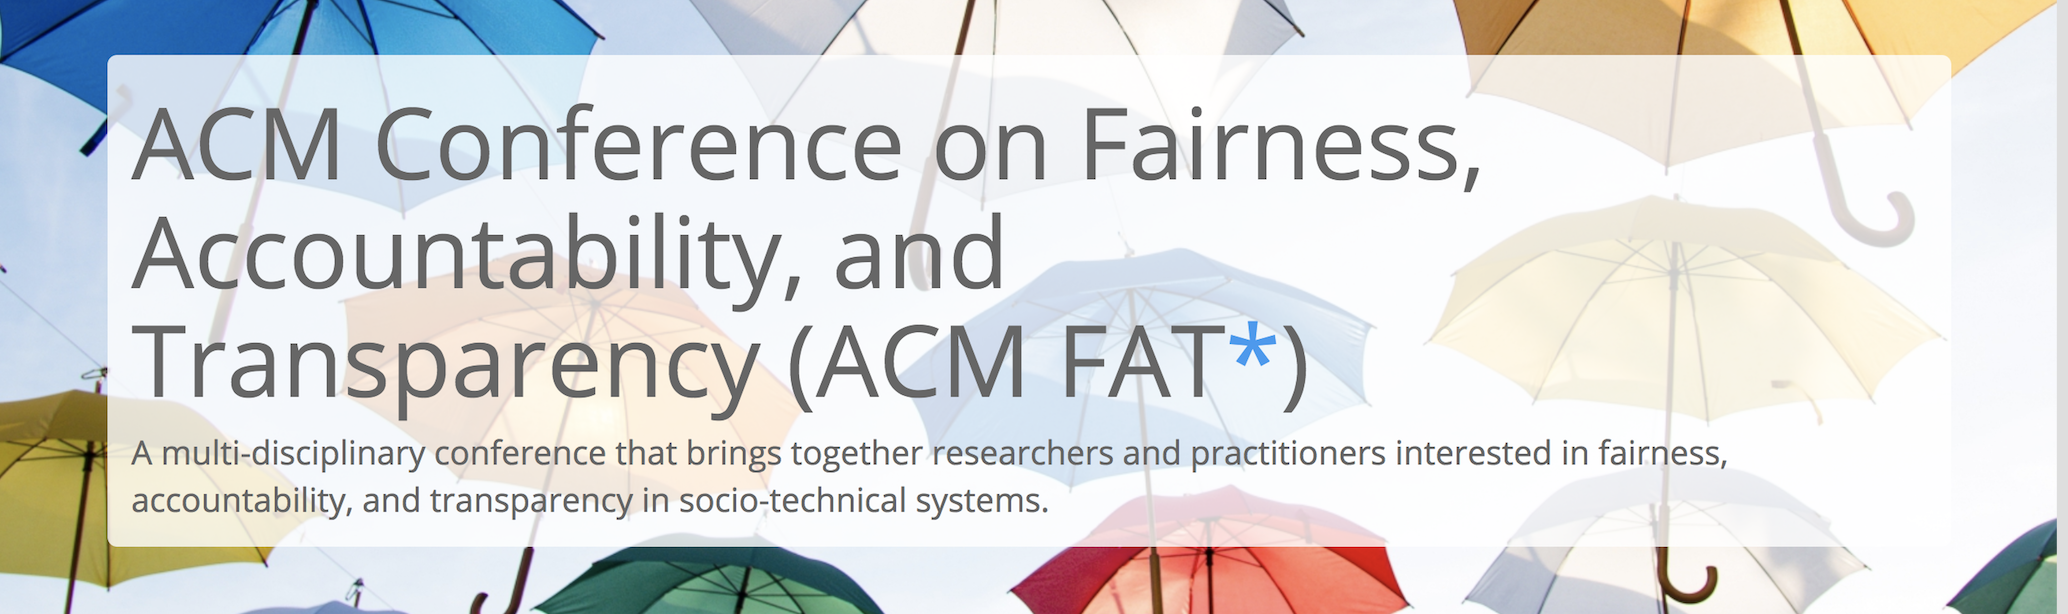 ACM Conference on Fairness, Accountability, and  Transparency (ACM FAT*)